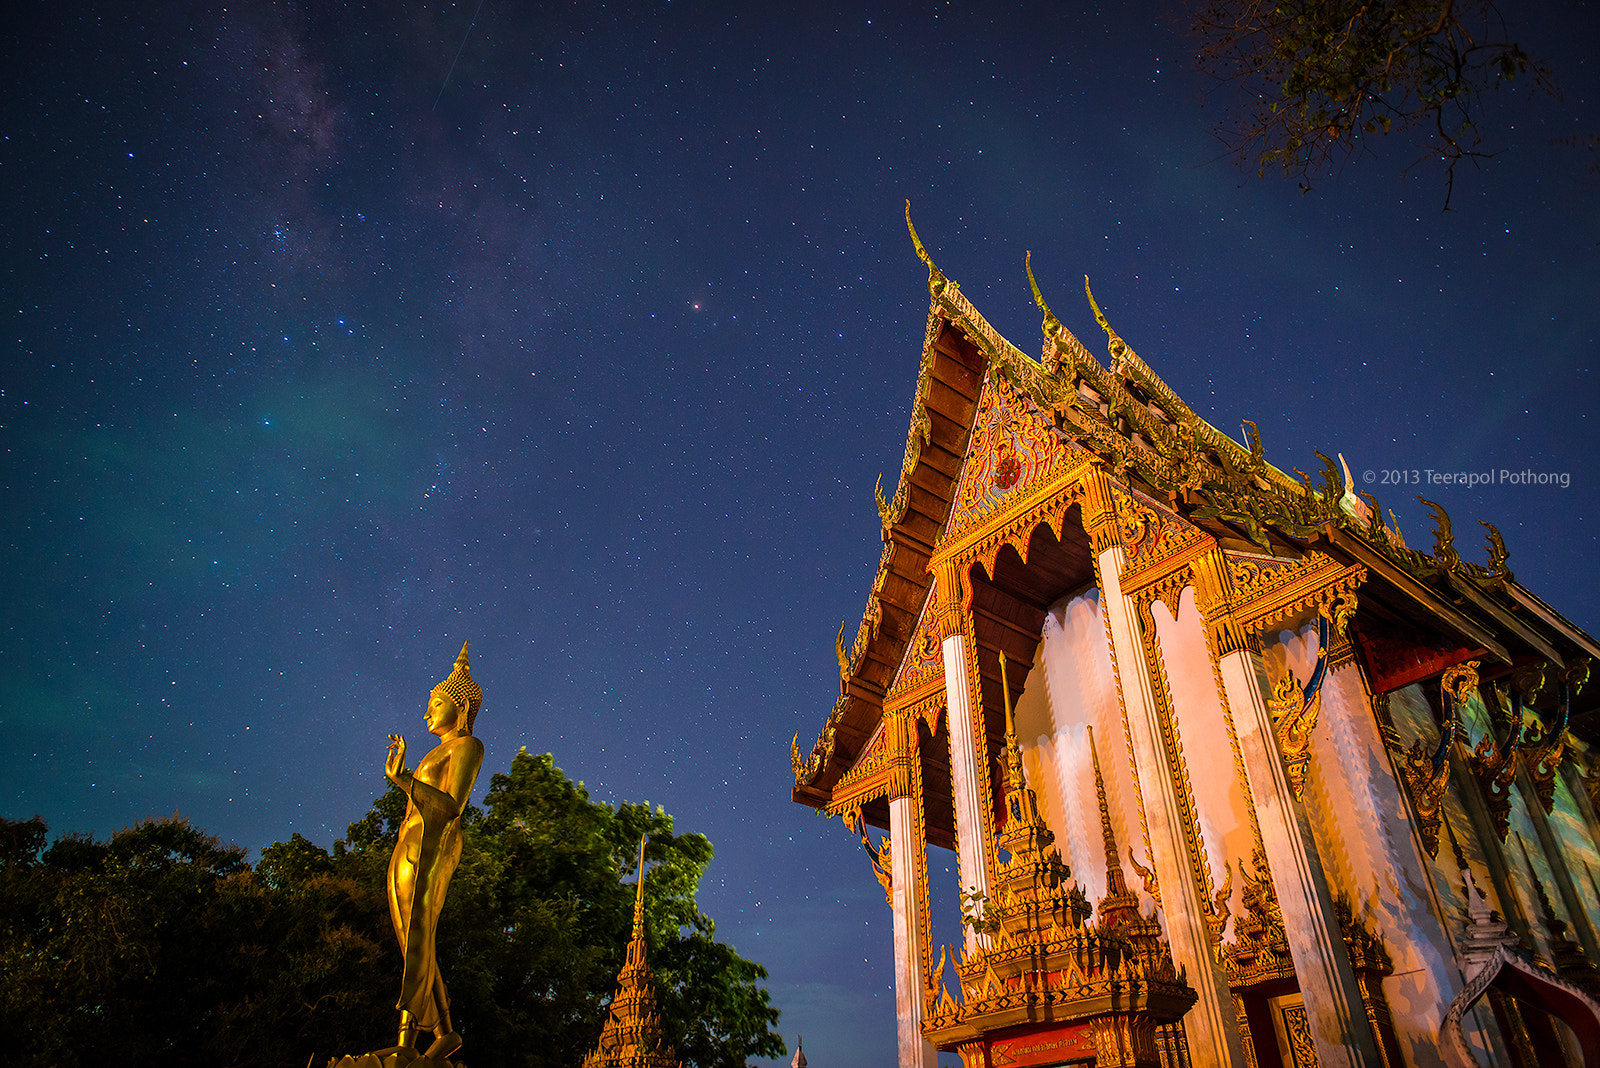 Photograph Milky Way Over Khao Bot Temple by Teerapol Pothong on 500px